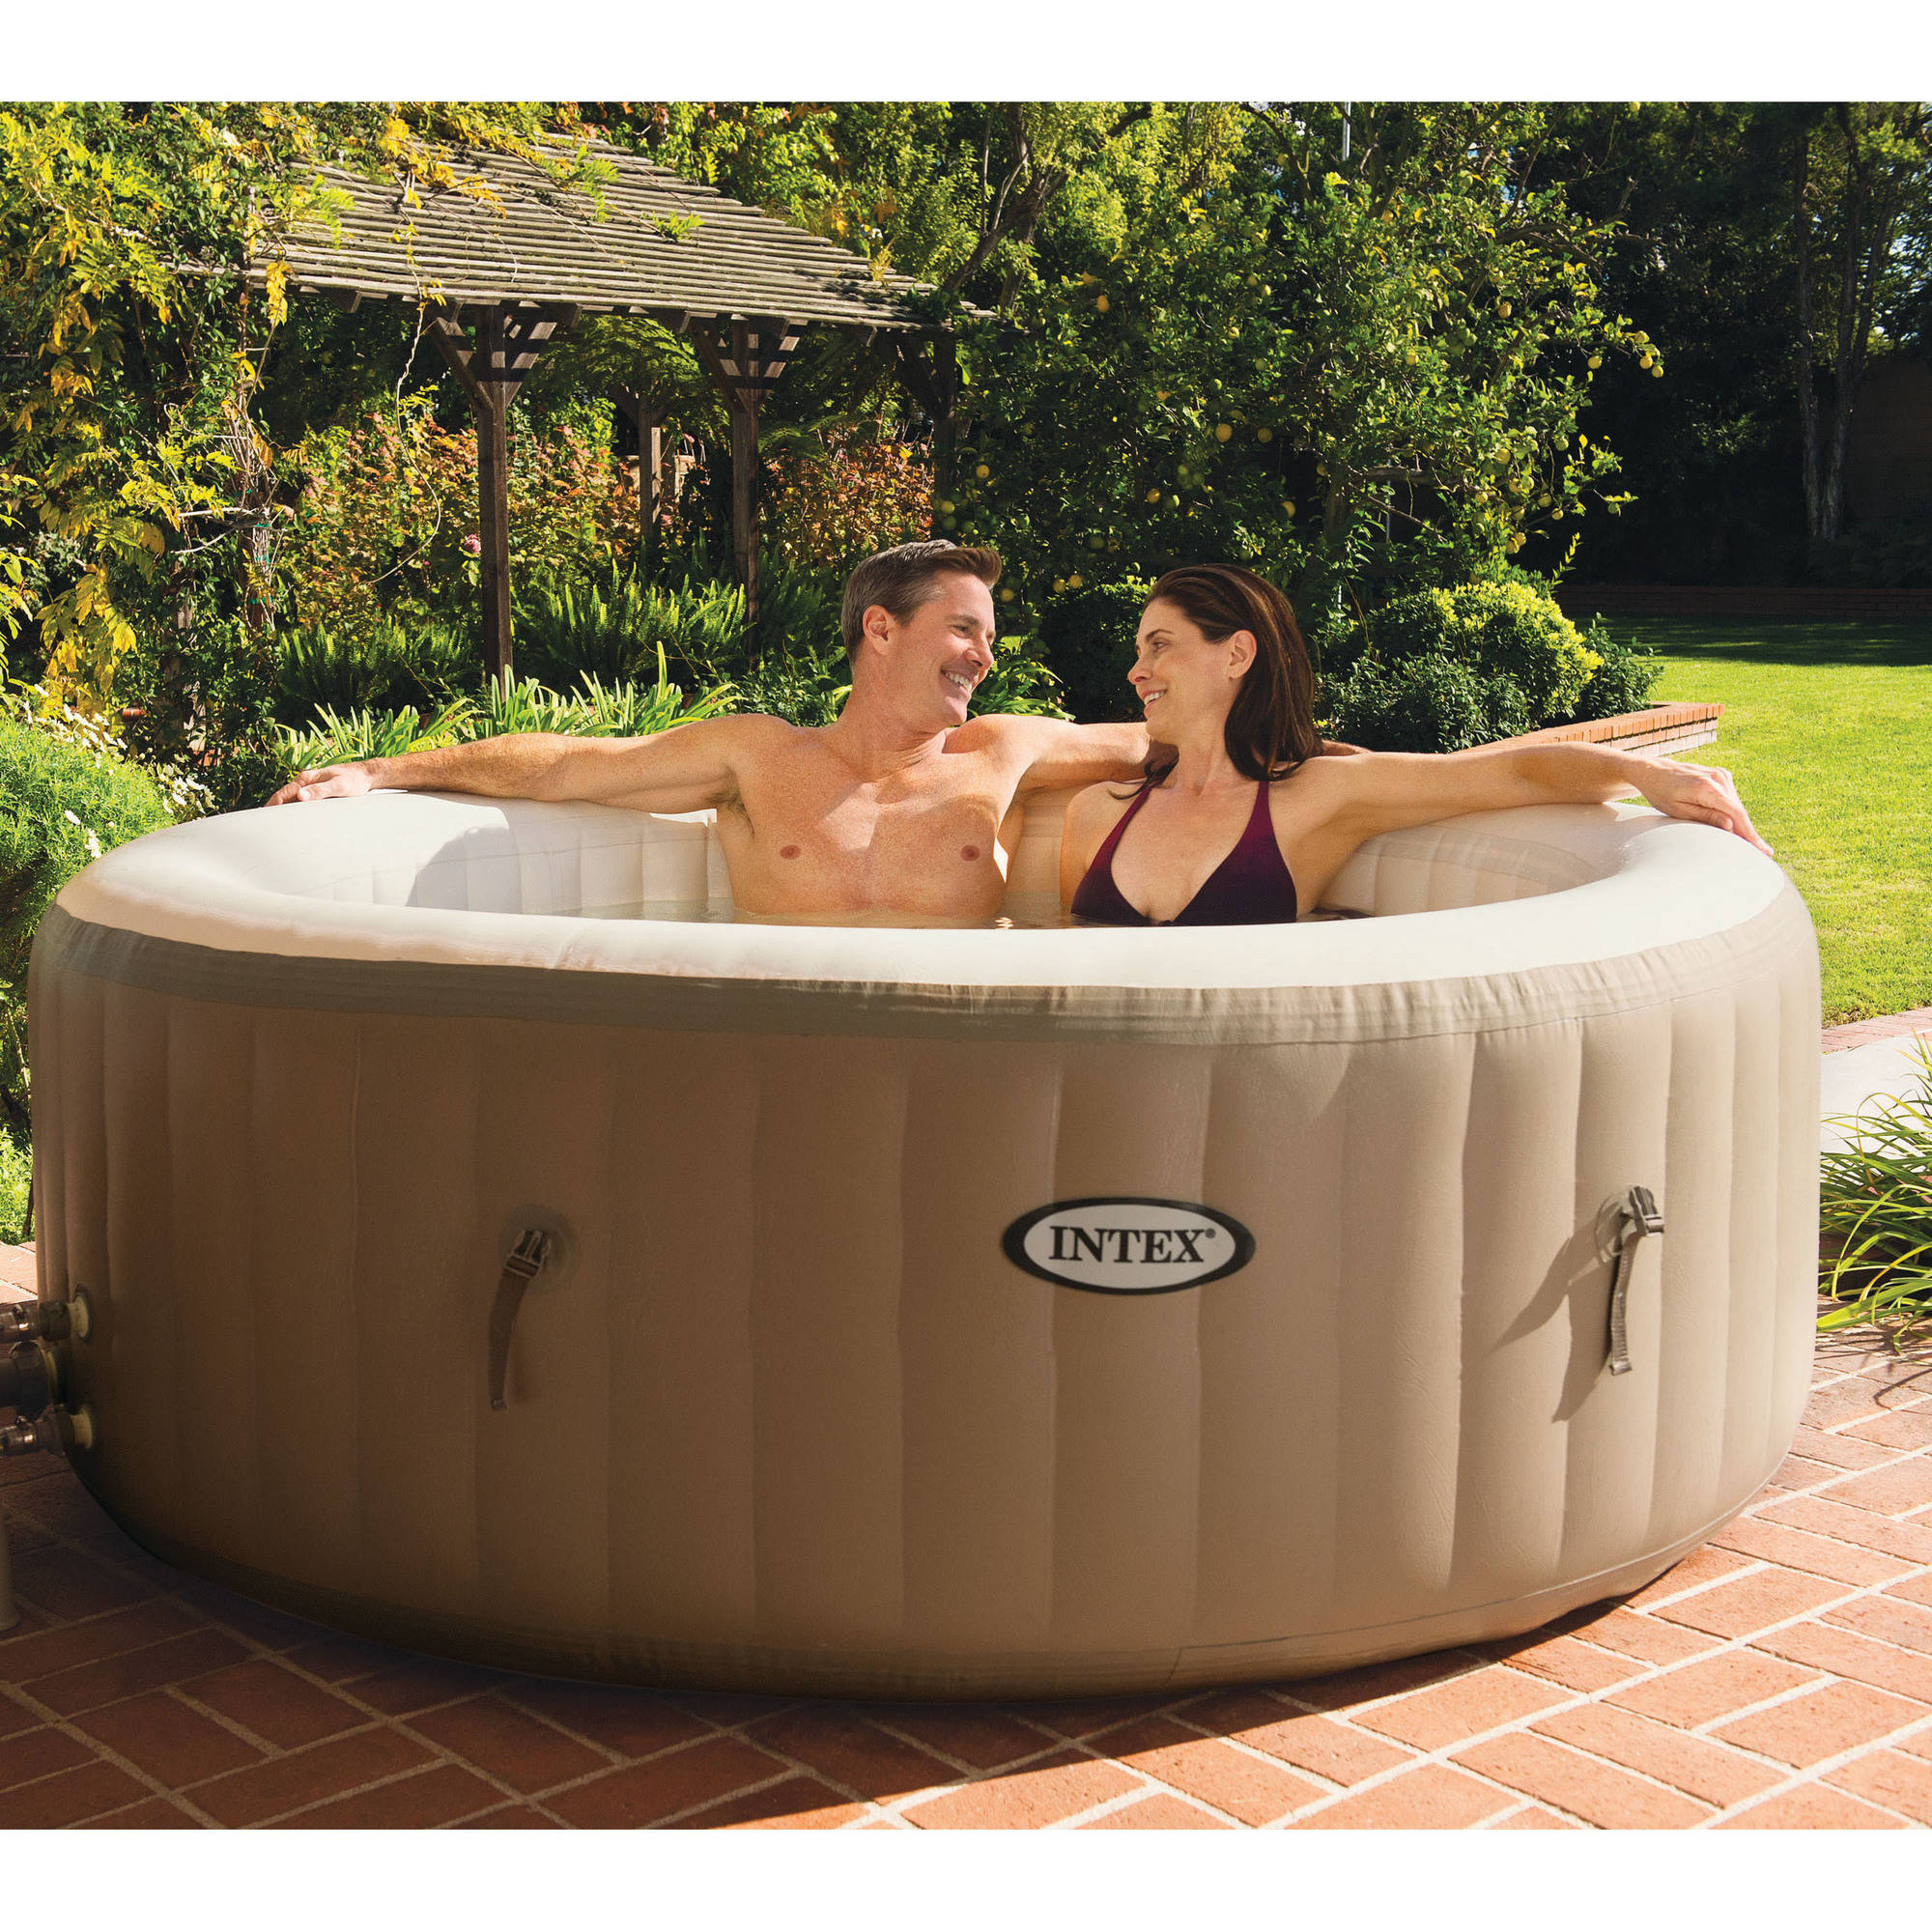 Exceptionnel Intex 120 Bubble Jets 4 Person Round Portable Inflatable Hot Tub Spa